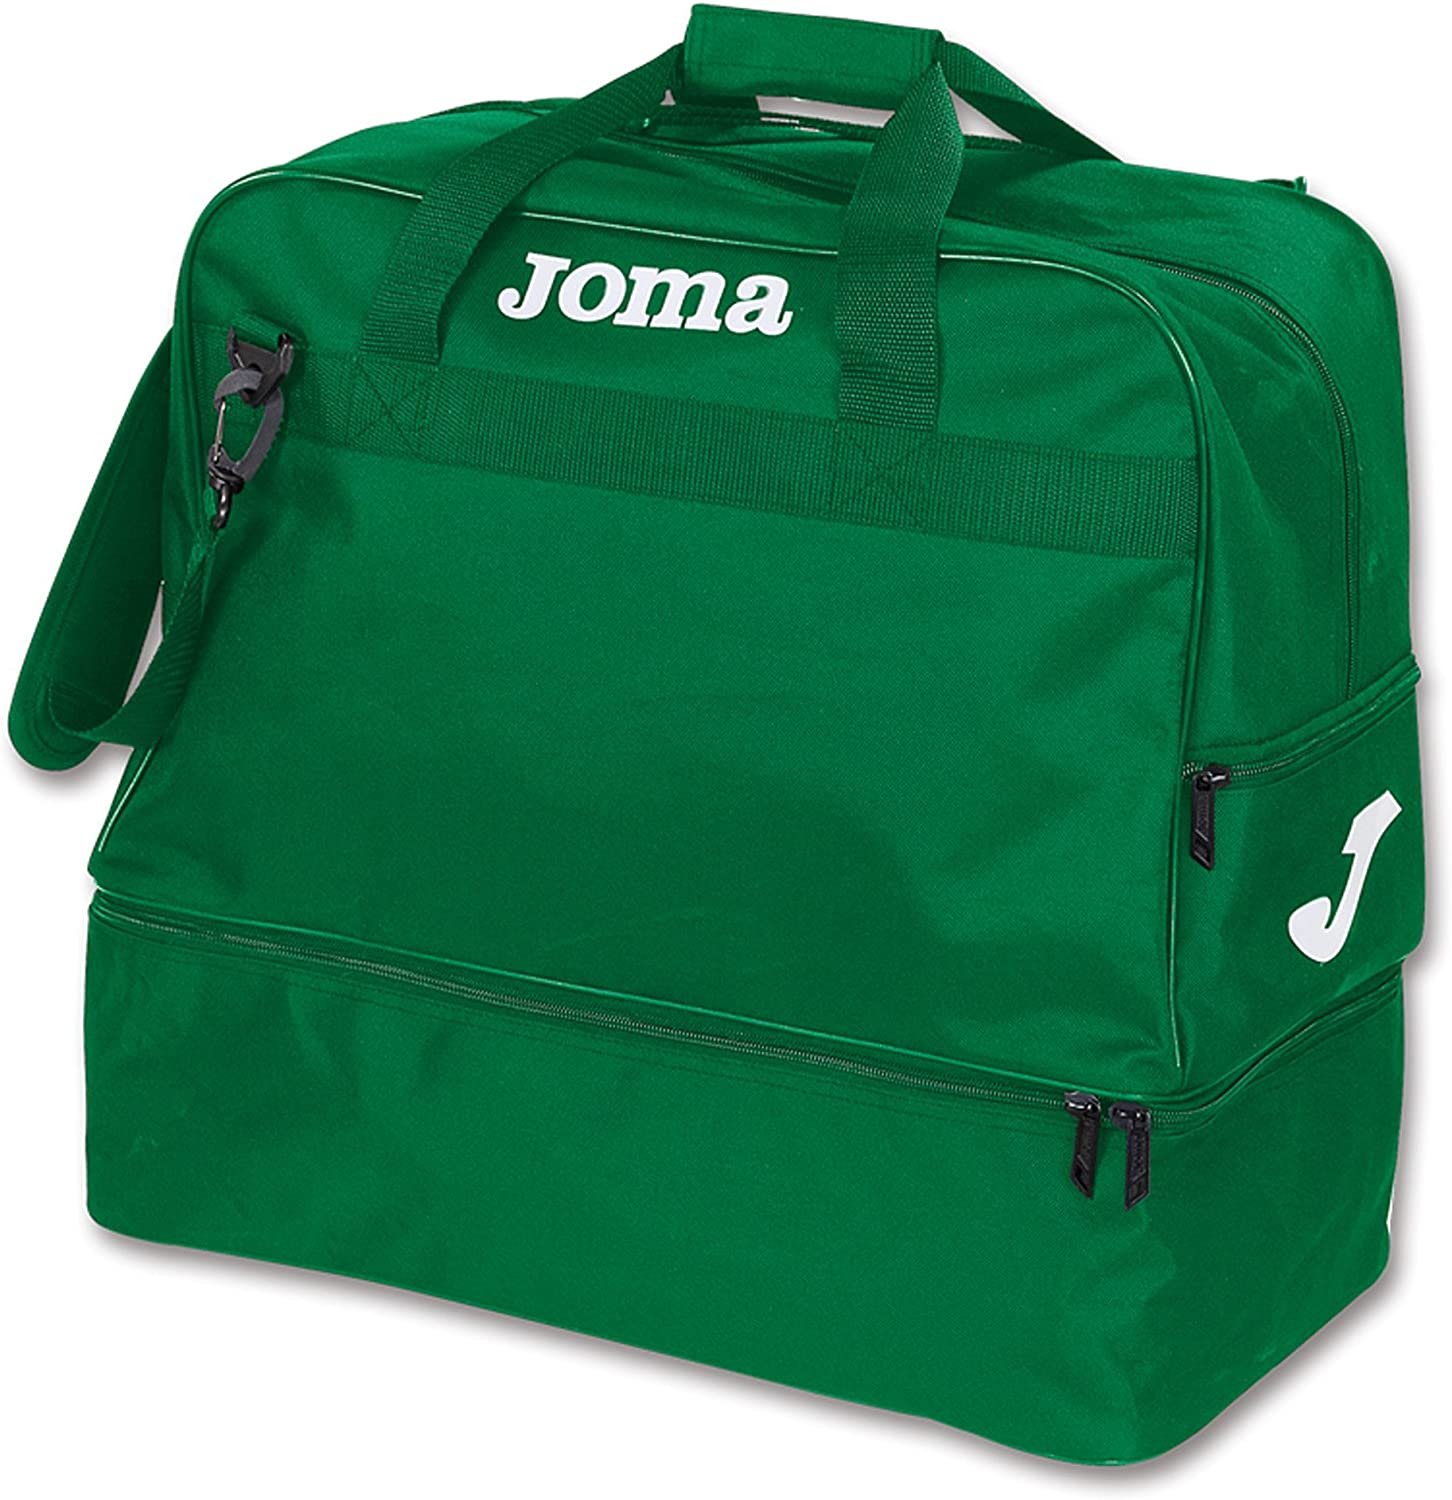 Joma shipfree Training Bag Medium Sports Base with Green lowest price Compartment